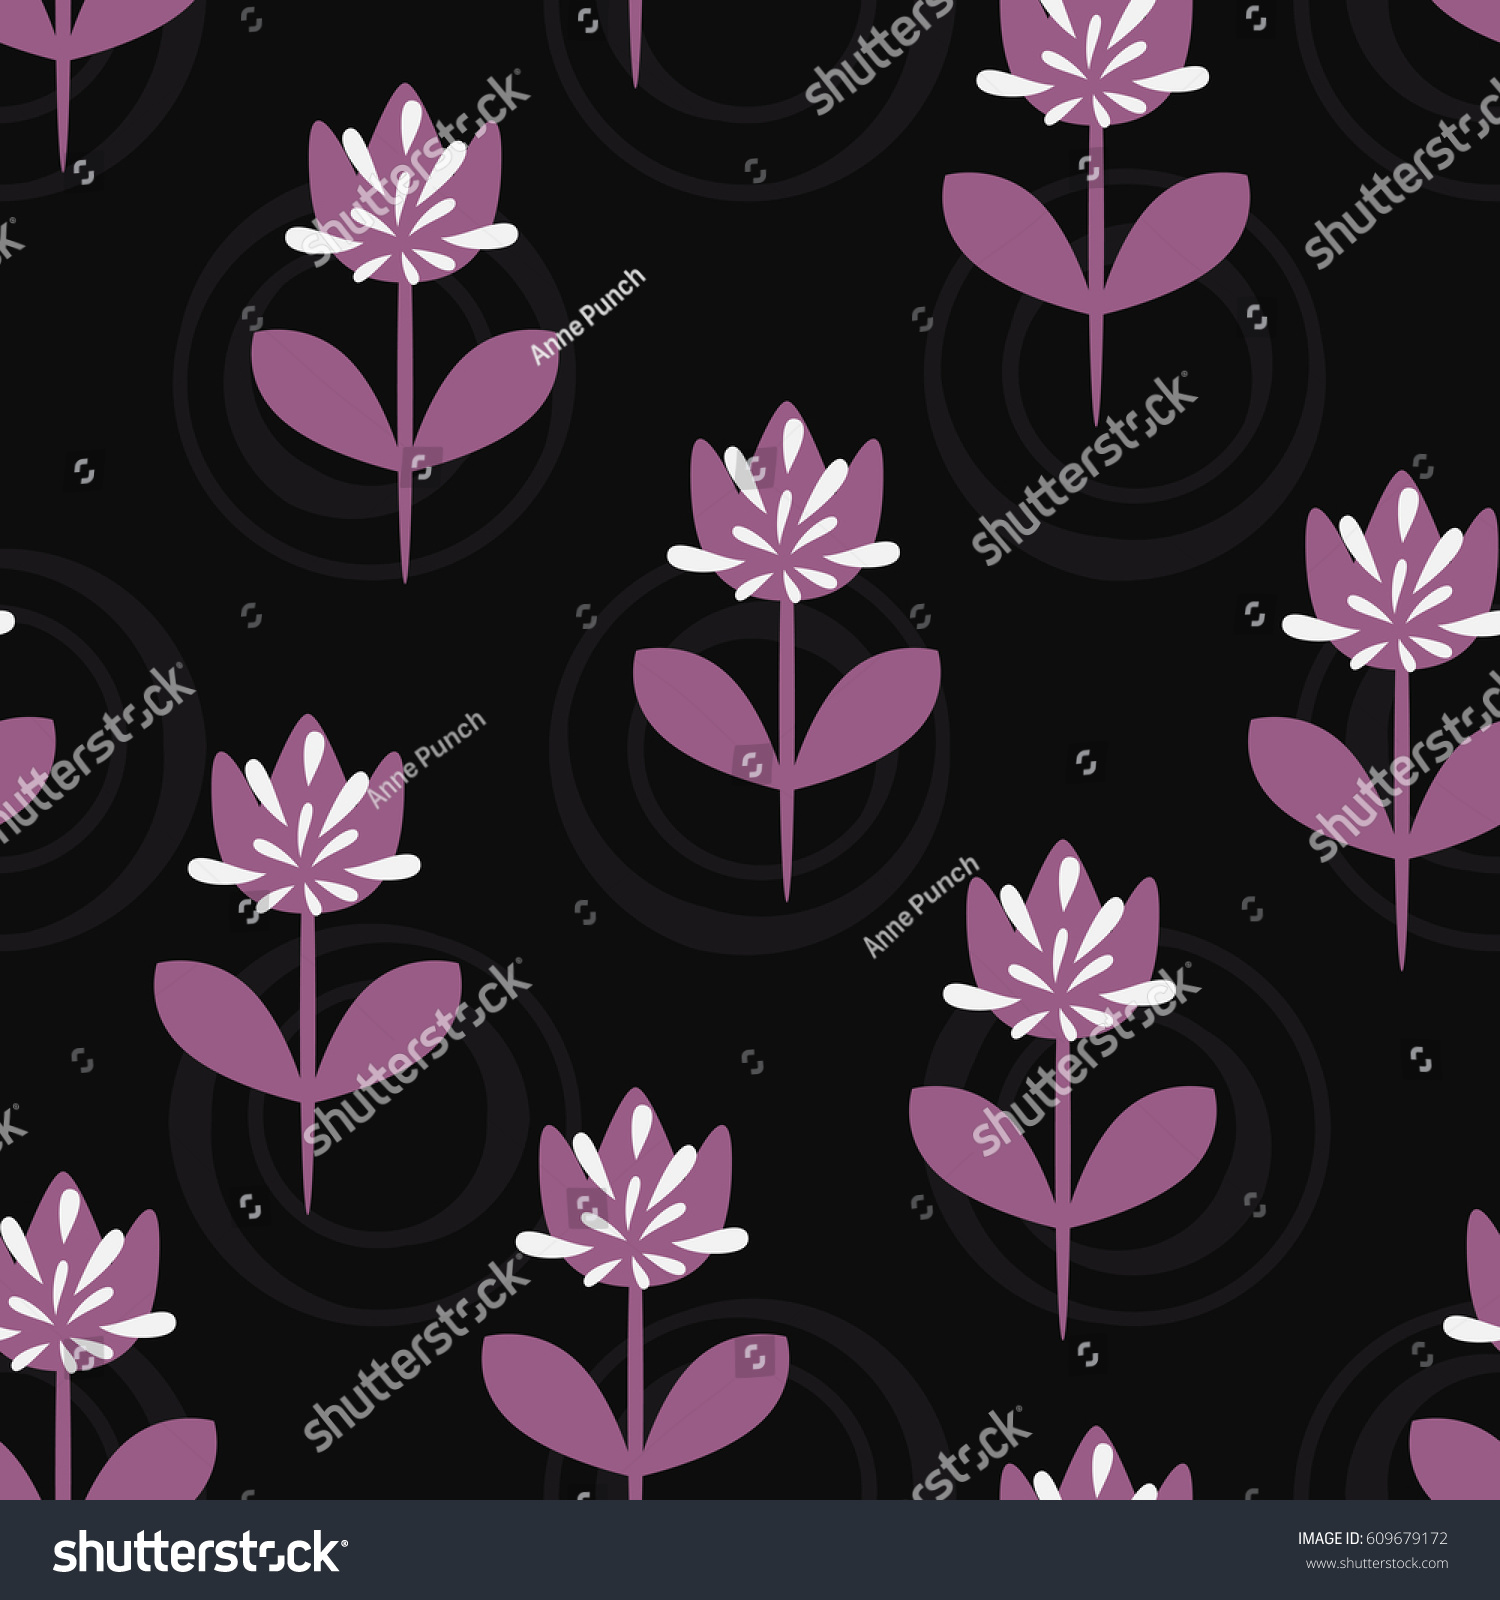 Simple floral pattern silhouettes of flowers with stems and leaves abstract buds round